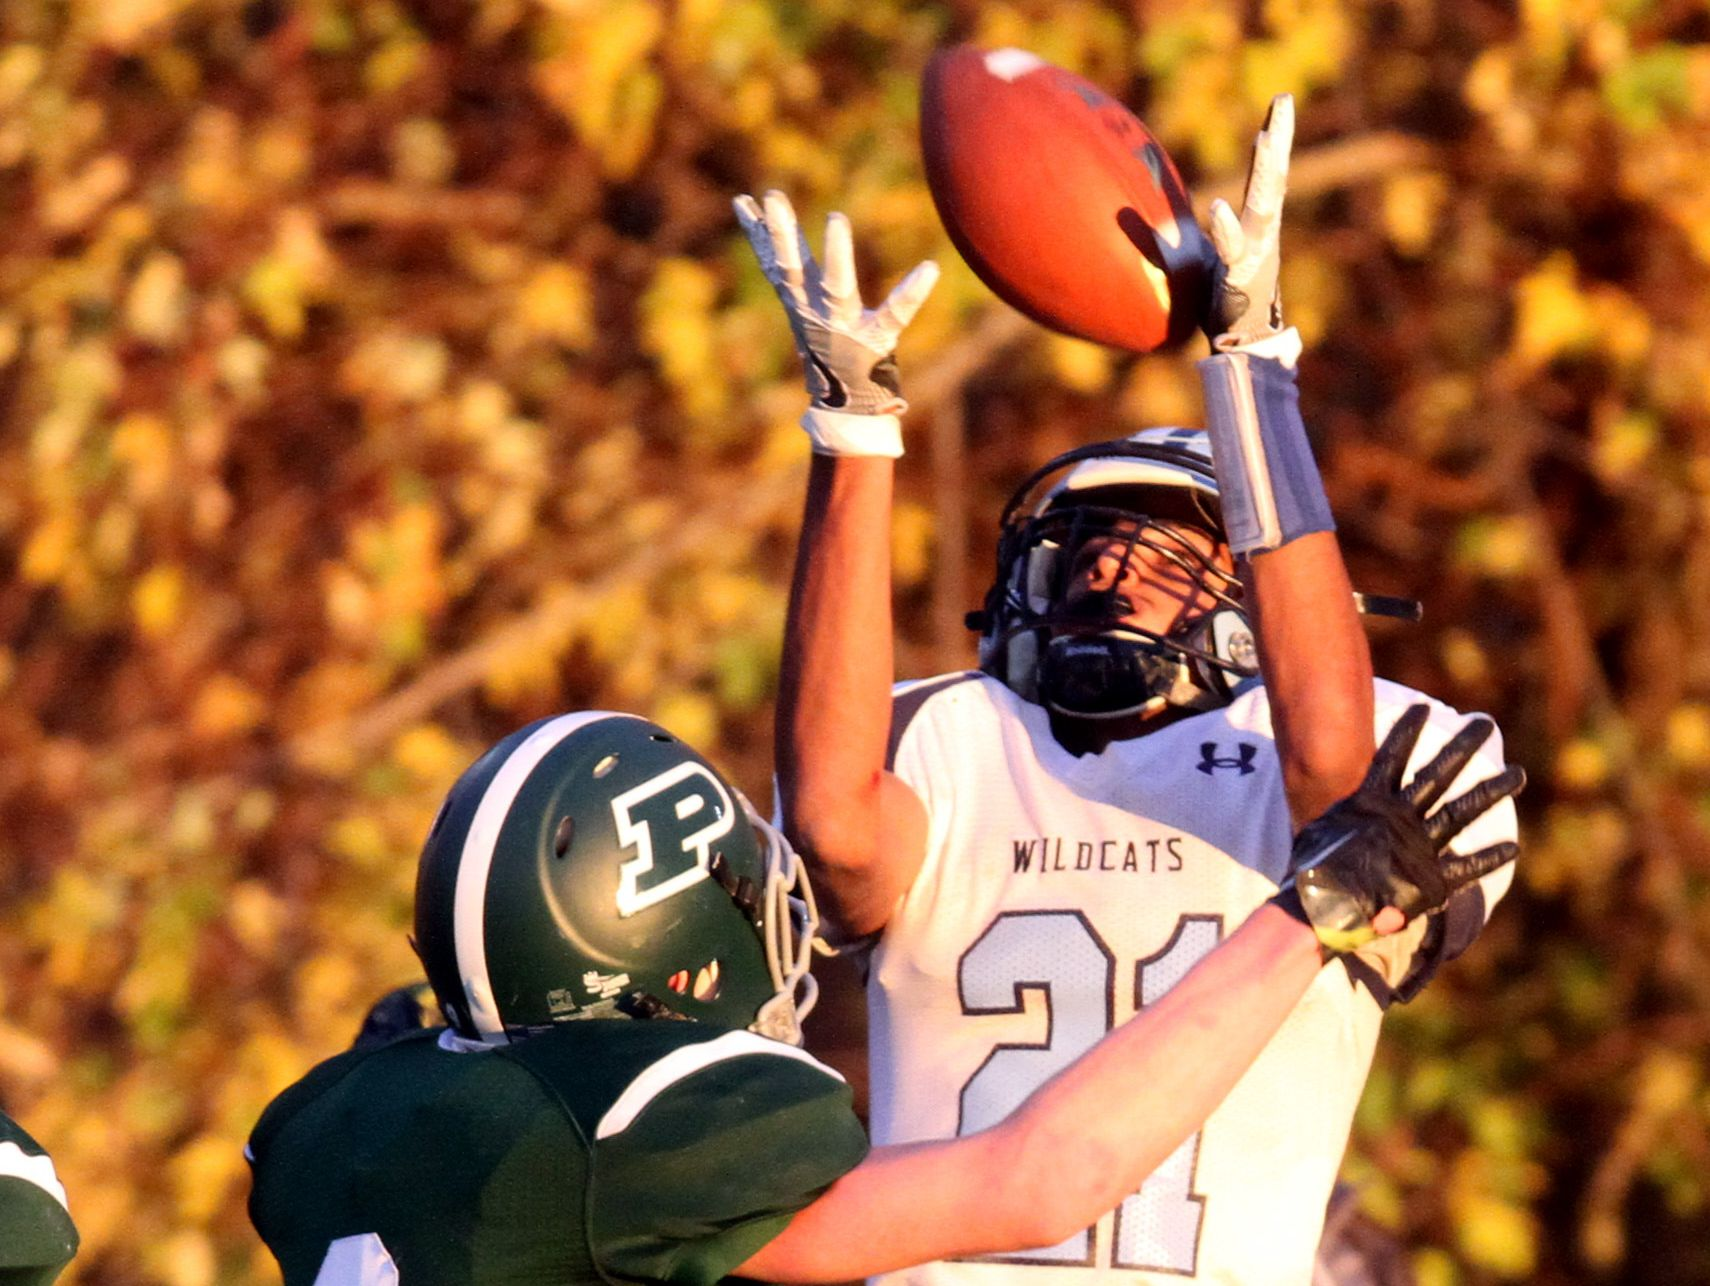 Westlake's Haseeb Azhar couldn't hold on the pass while being defended by Pleasantville's Jake Farrelly during the Section 1 Class B football championship at Mahopac High School Nov. 6, 2016. Pleasantville defeated Westlake 28-21.